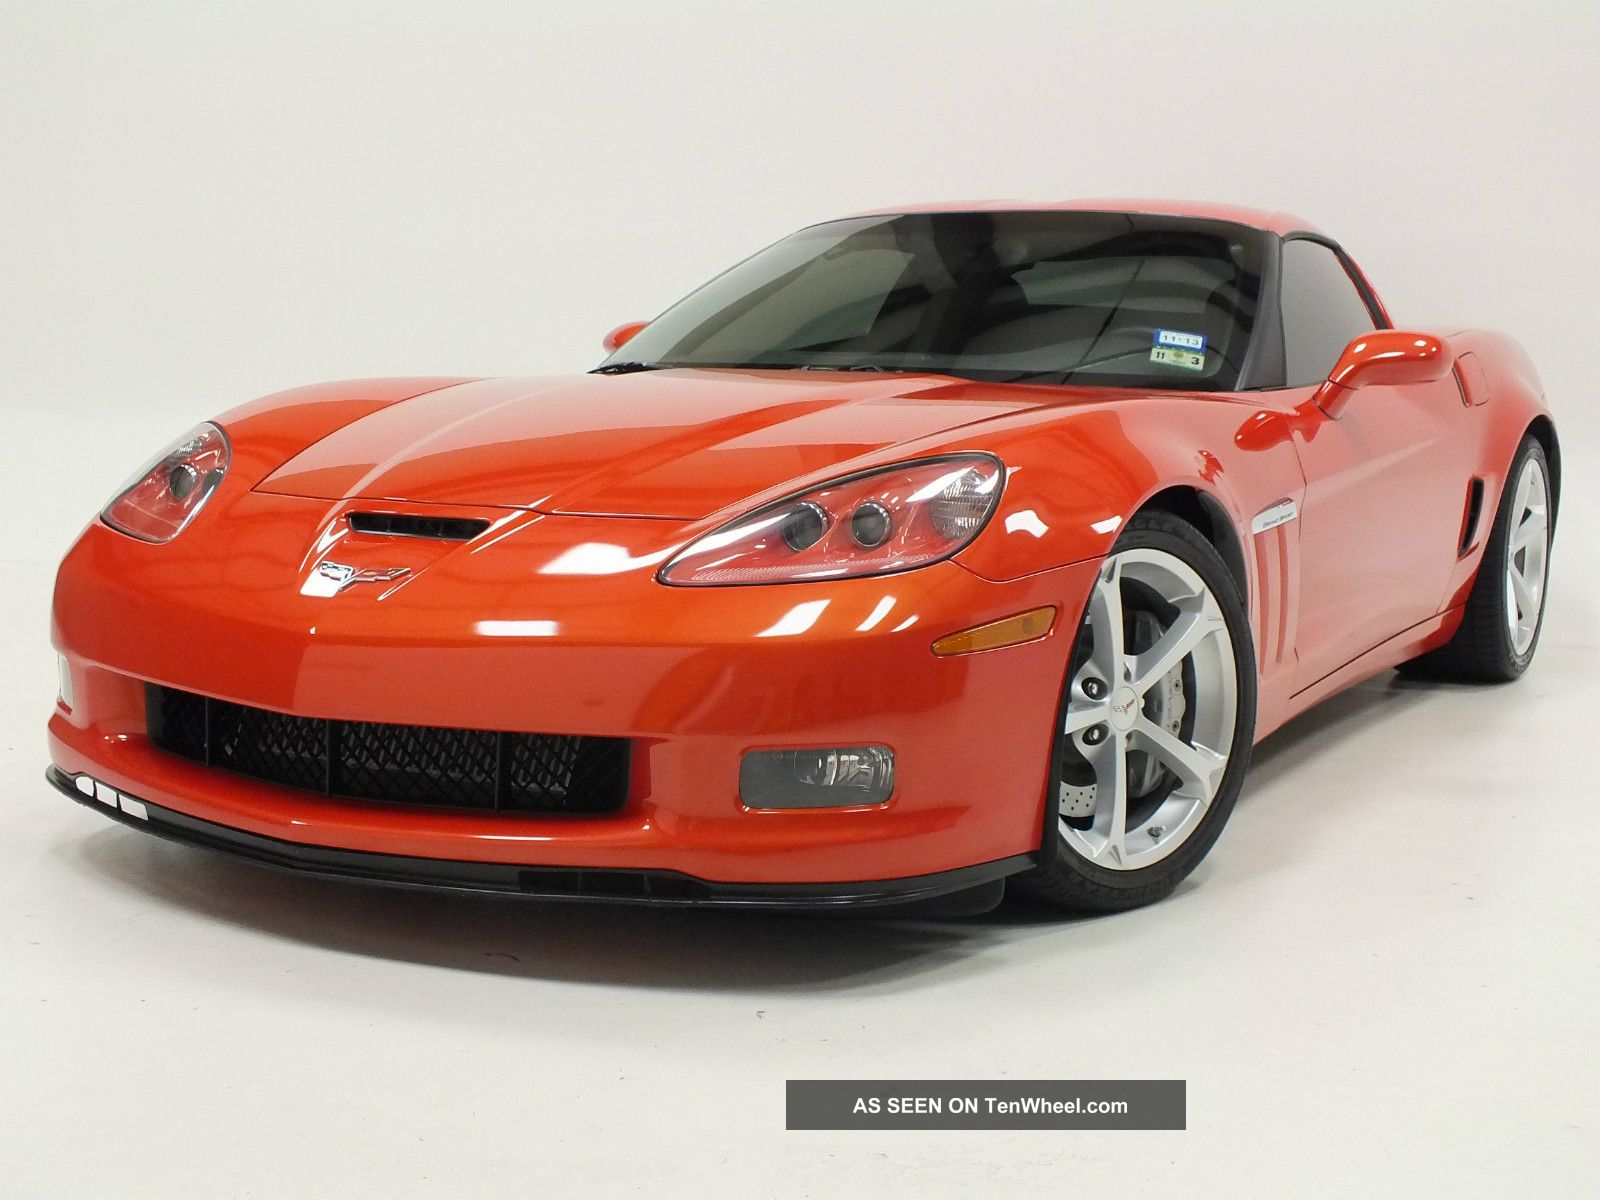 2011 Corvette Grand Sport Supercharged Blower 675hp $15k Extras Z16 Z06 Zr1 Corvette photo